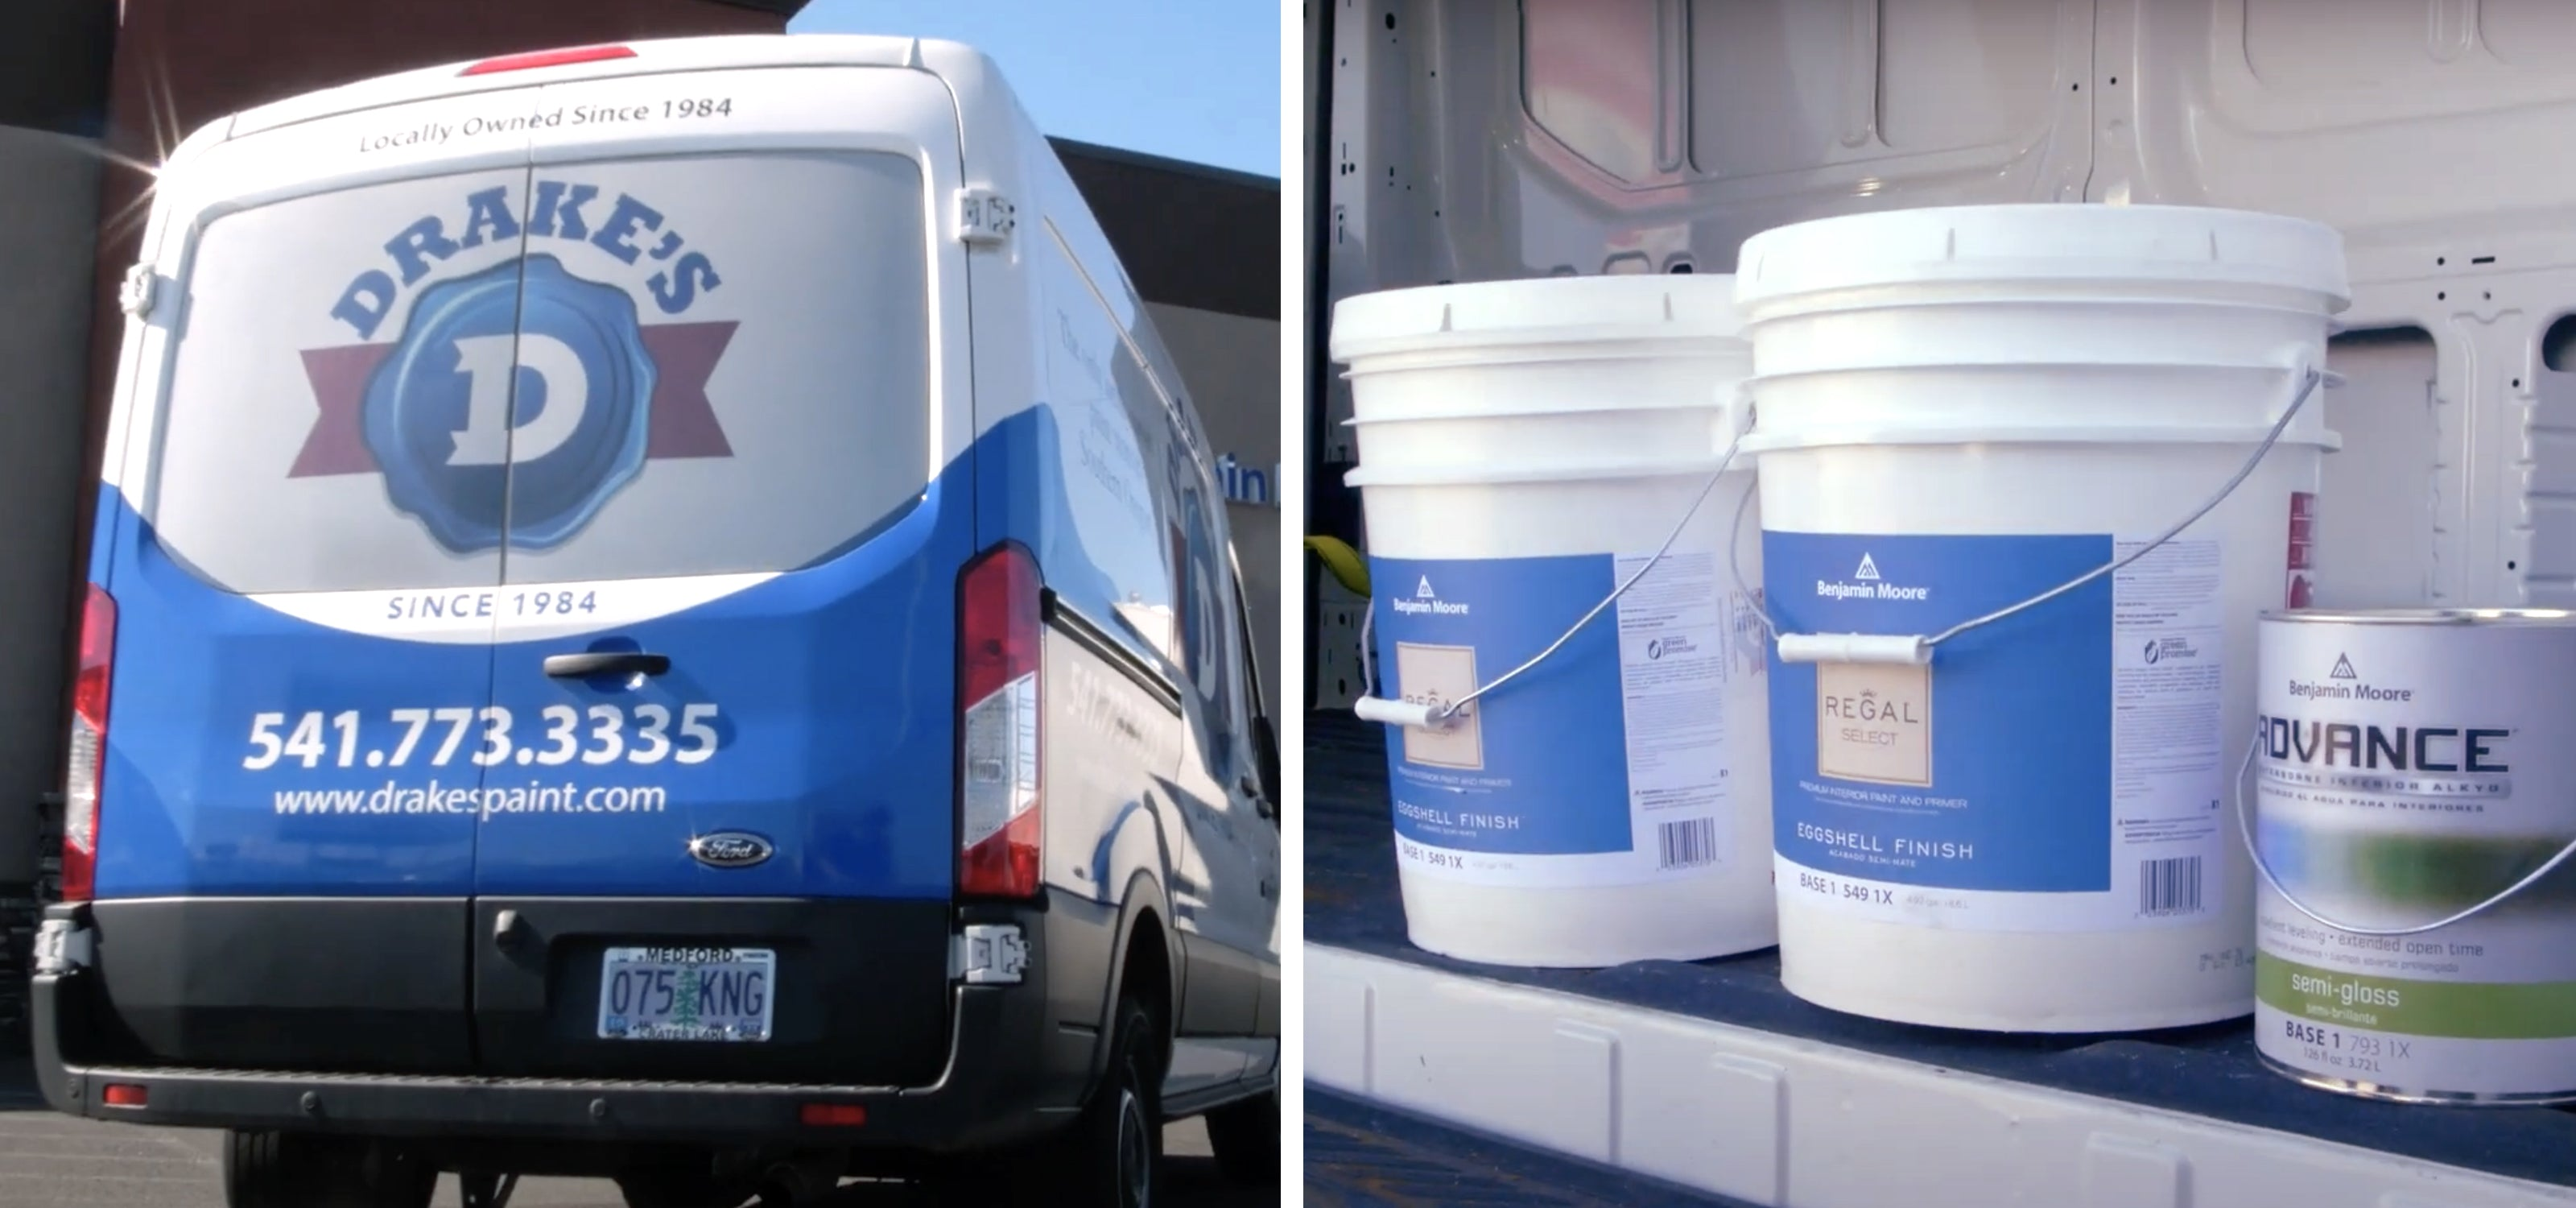 Drake's own delivery van with one gallon and 5 gallon products